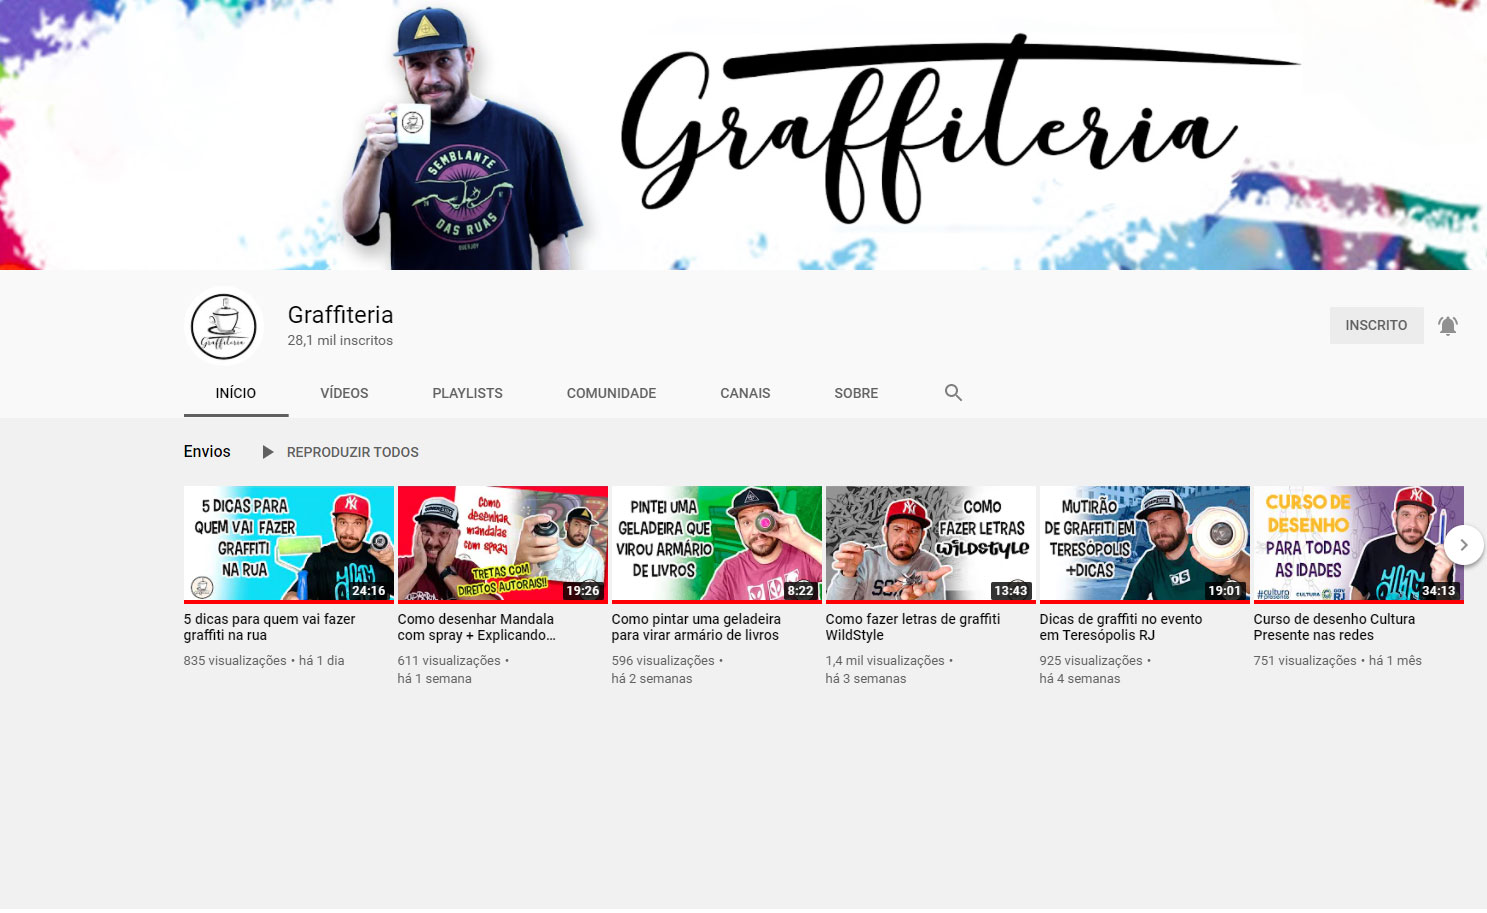 Youtube canal Graffiteria